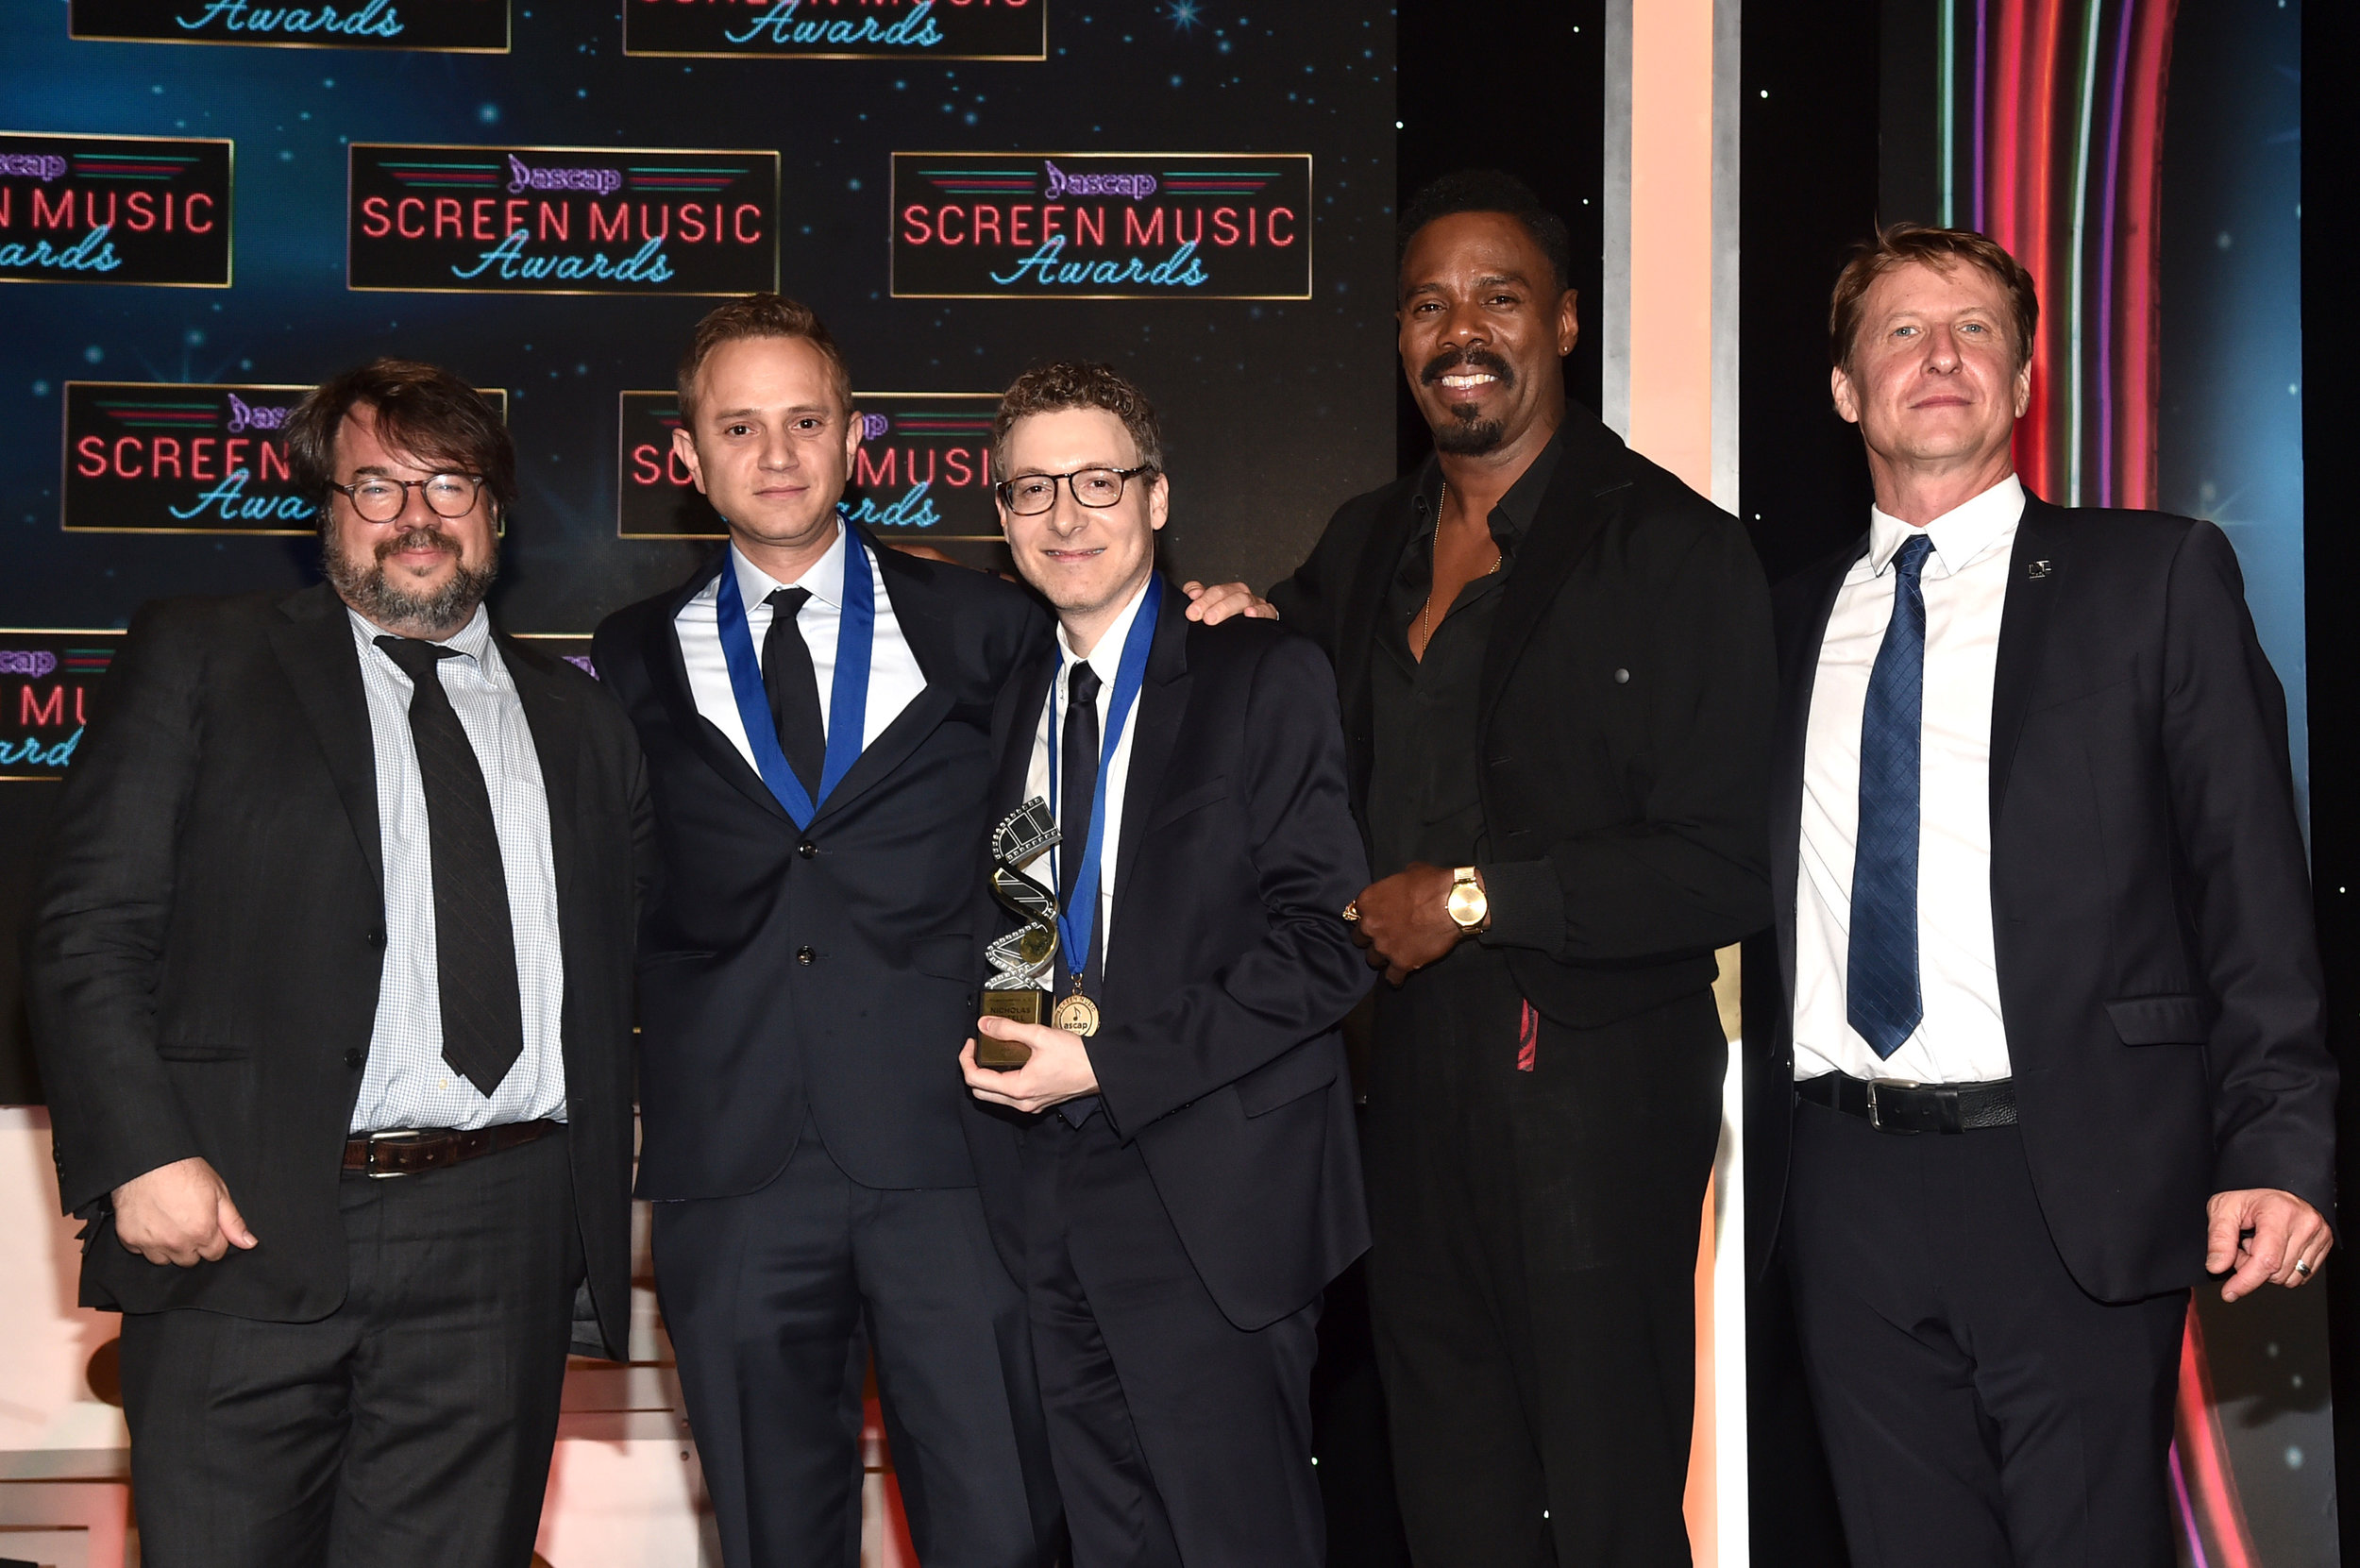 BEVERLY HILLS, CALIFORNIA - MAY 15: (L-R) President of the Guild of Music Supervisors Thomas Golubić, Harmony Award winners Gabe Hilfer and Nicholas Britell, Colman Domingo and ASCAP SVP: Film & TV Music / New Media Shawn LeMone stand onstage during the ASCAP 2019 Screen Music Awards - Show at The Beverly Hilton Hotel on May 15, 2019 in Beverly Hills, California. (Photo by Alberto E. Rodriguez/Getty Images for ASCAP)